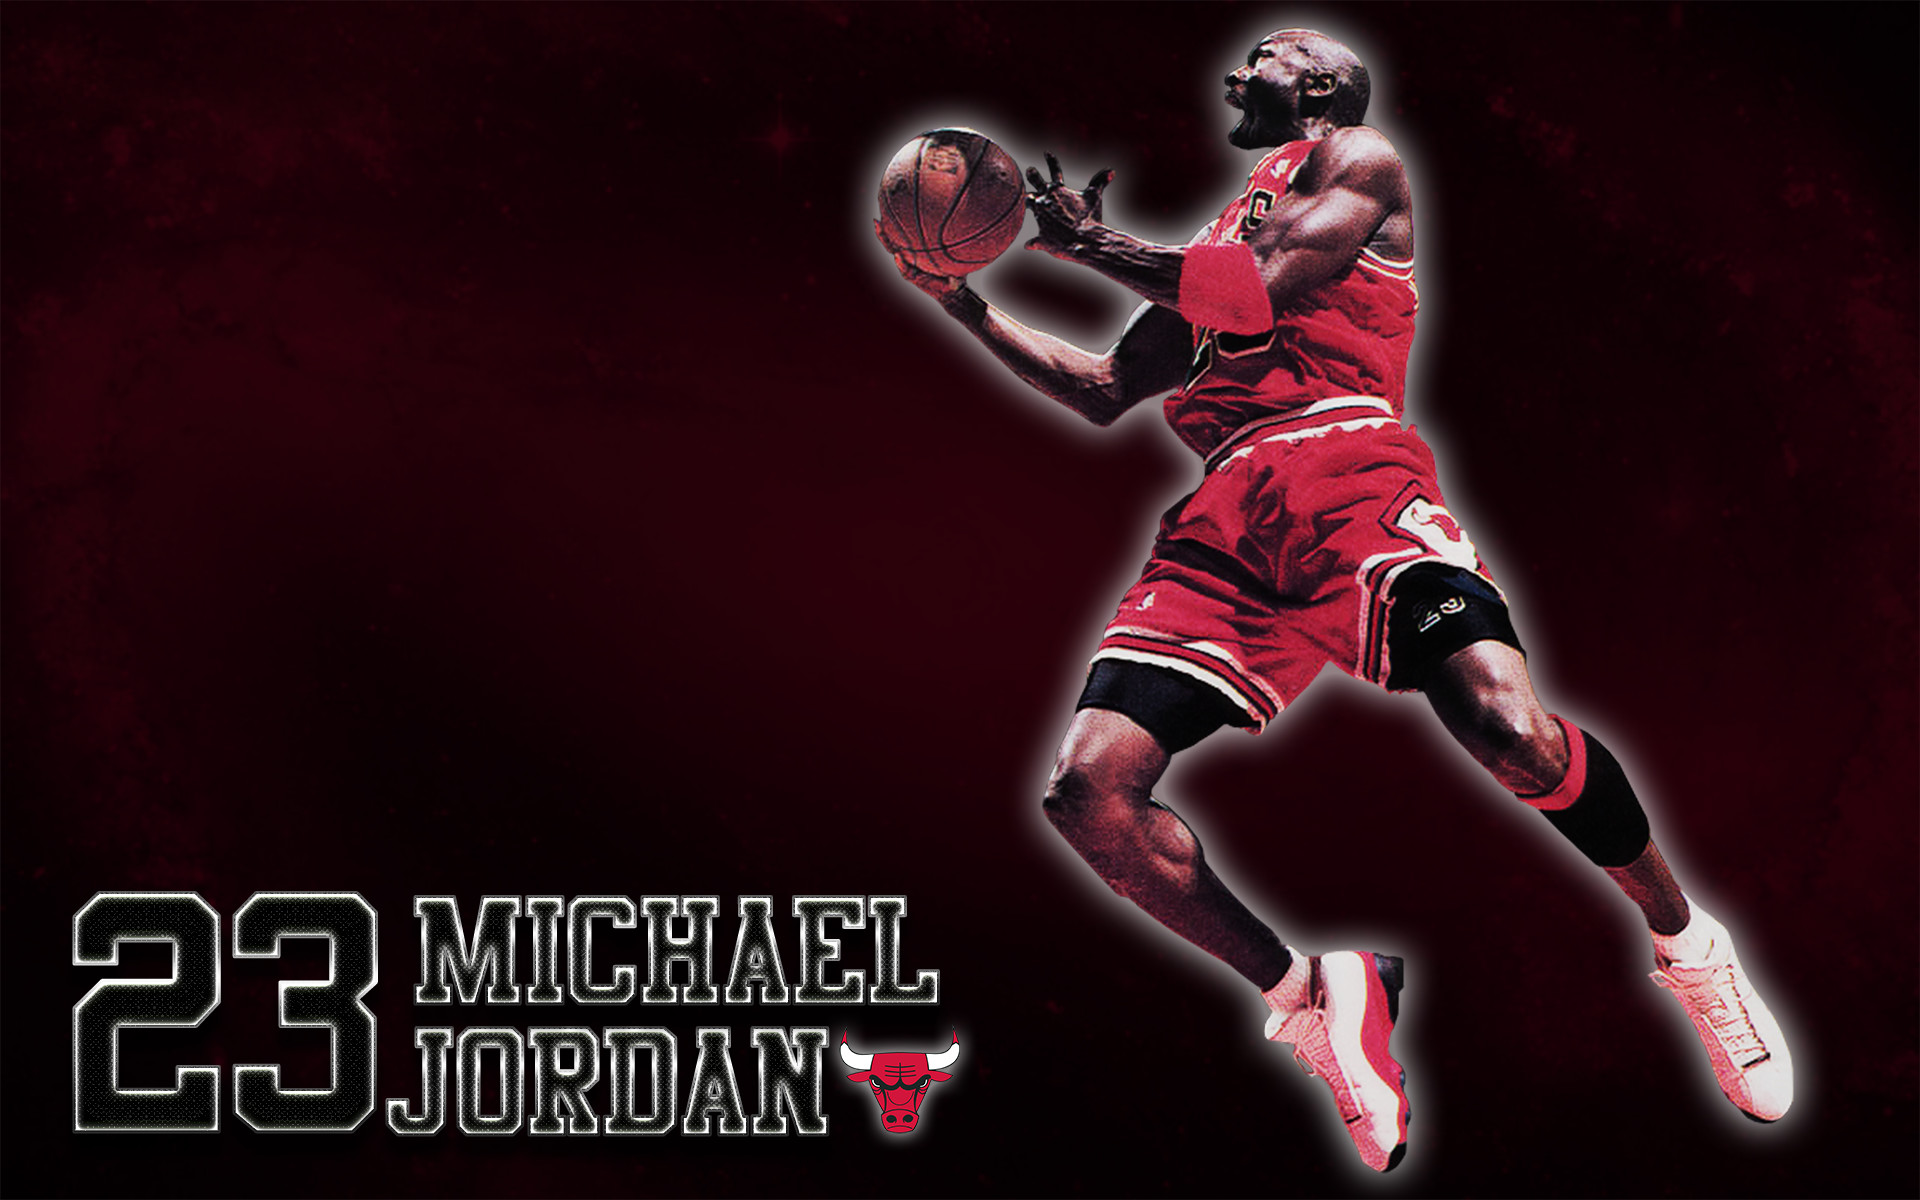 1920x1200 Chicago Bulls Wallpaper by WildSketchbook on DeviantArt | Chicago Bulls |  Pinterest | Bulls wallpaper, Chicago bulls and Chicago